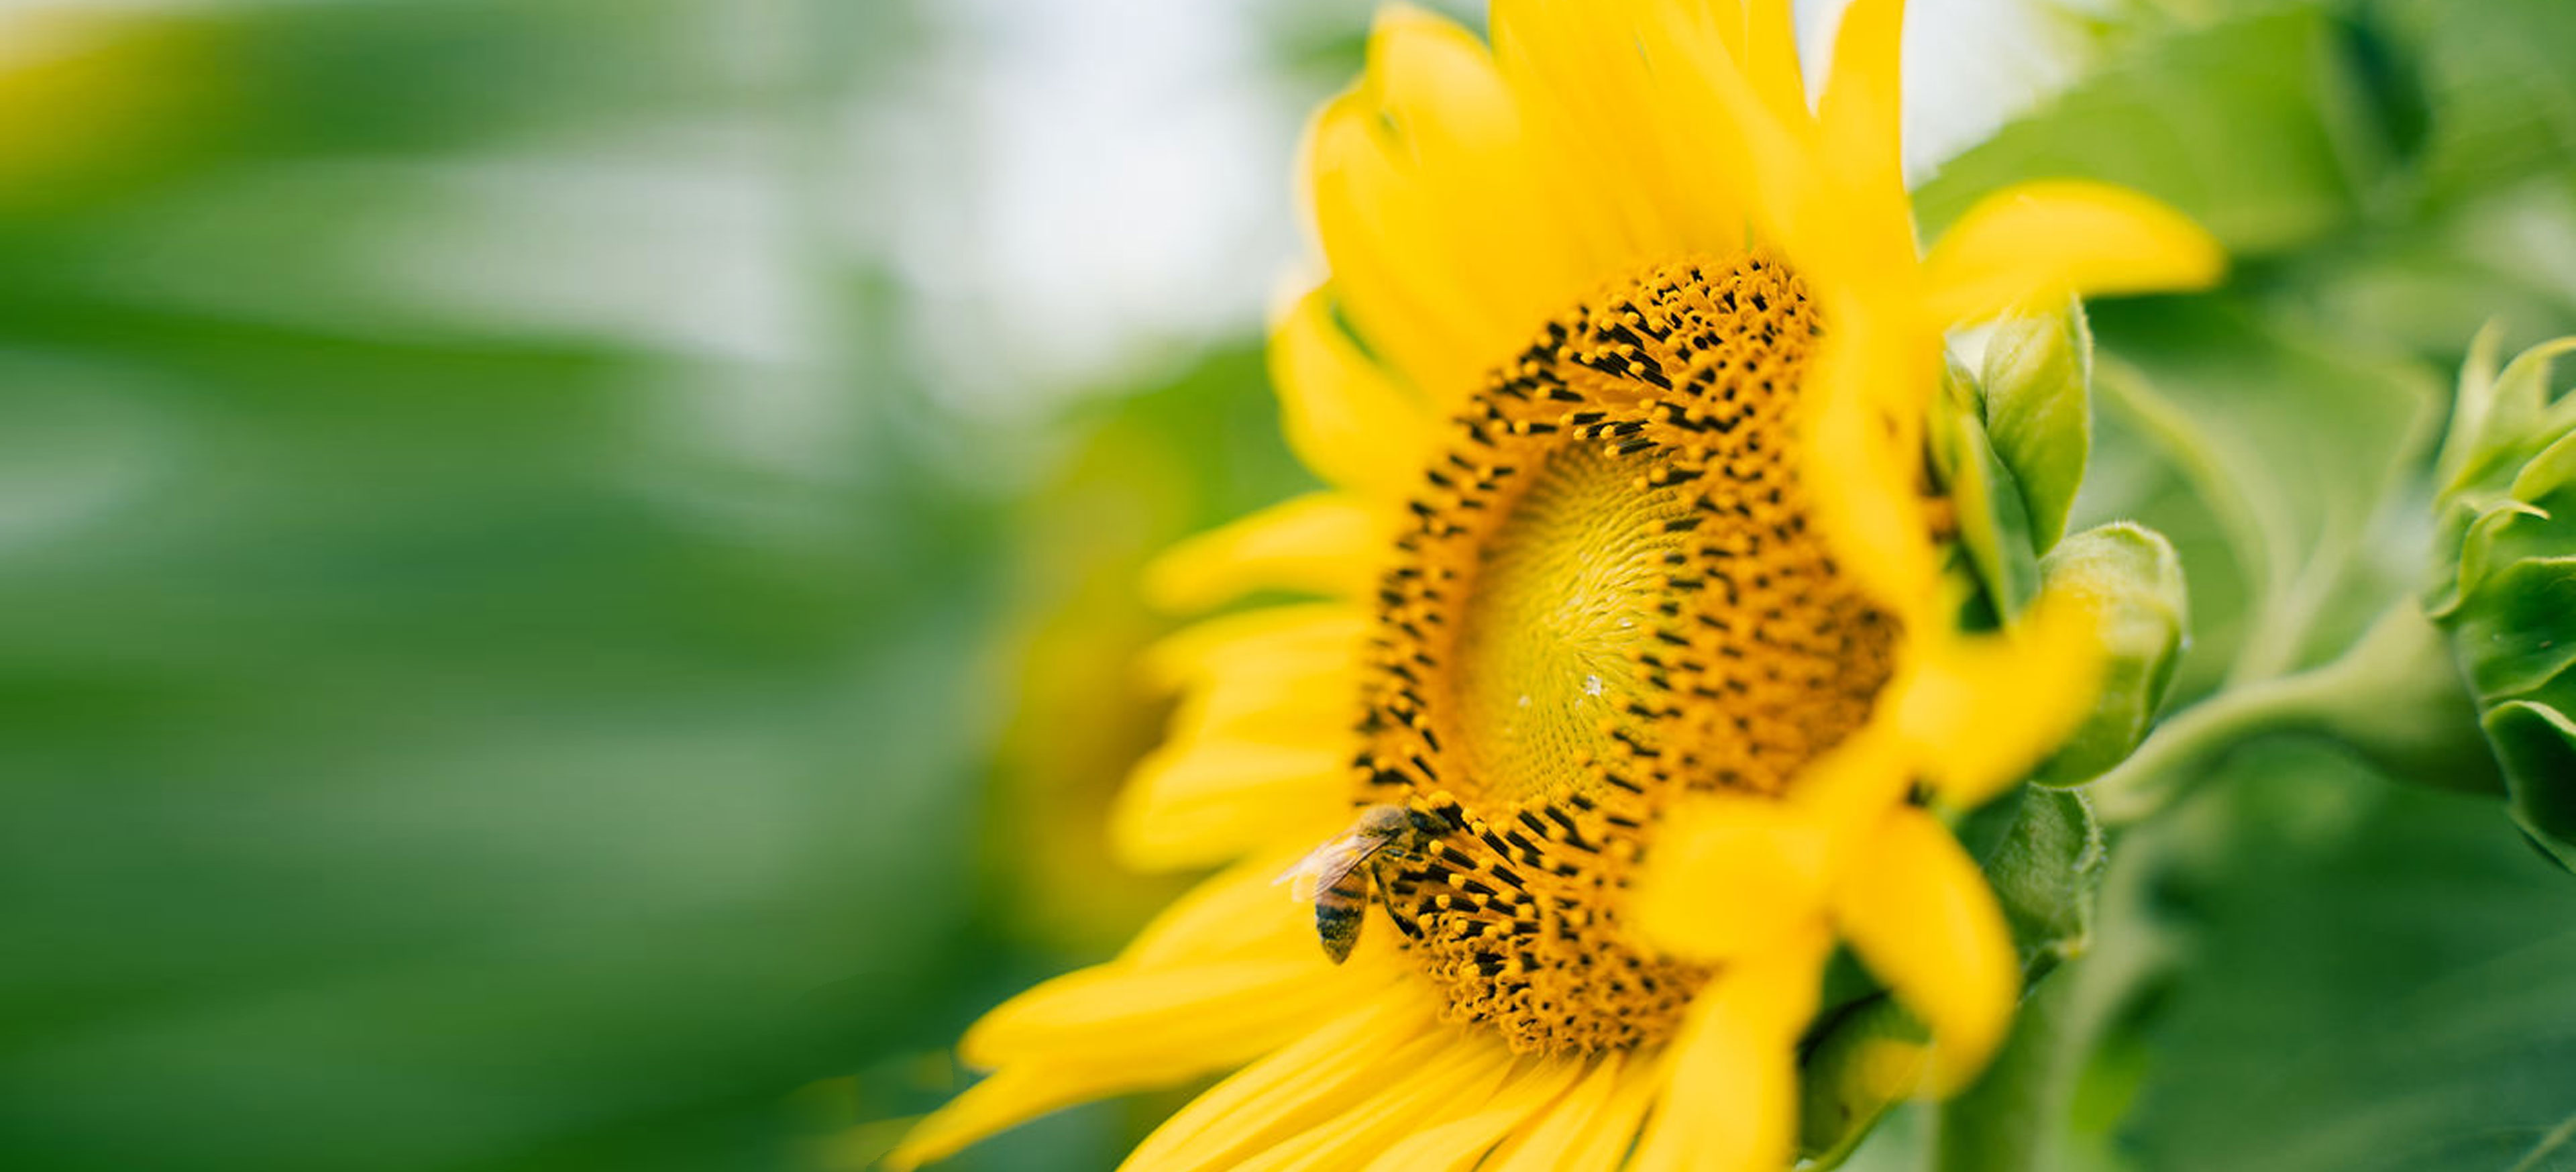 sunflower-header